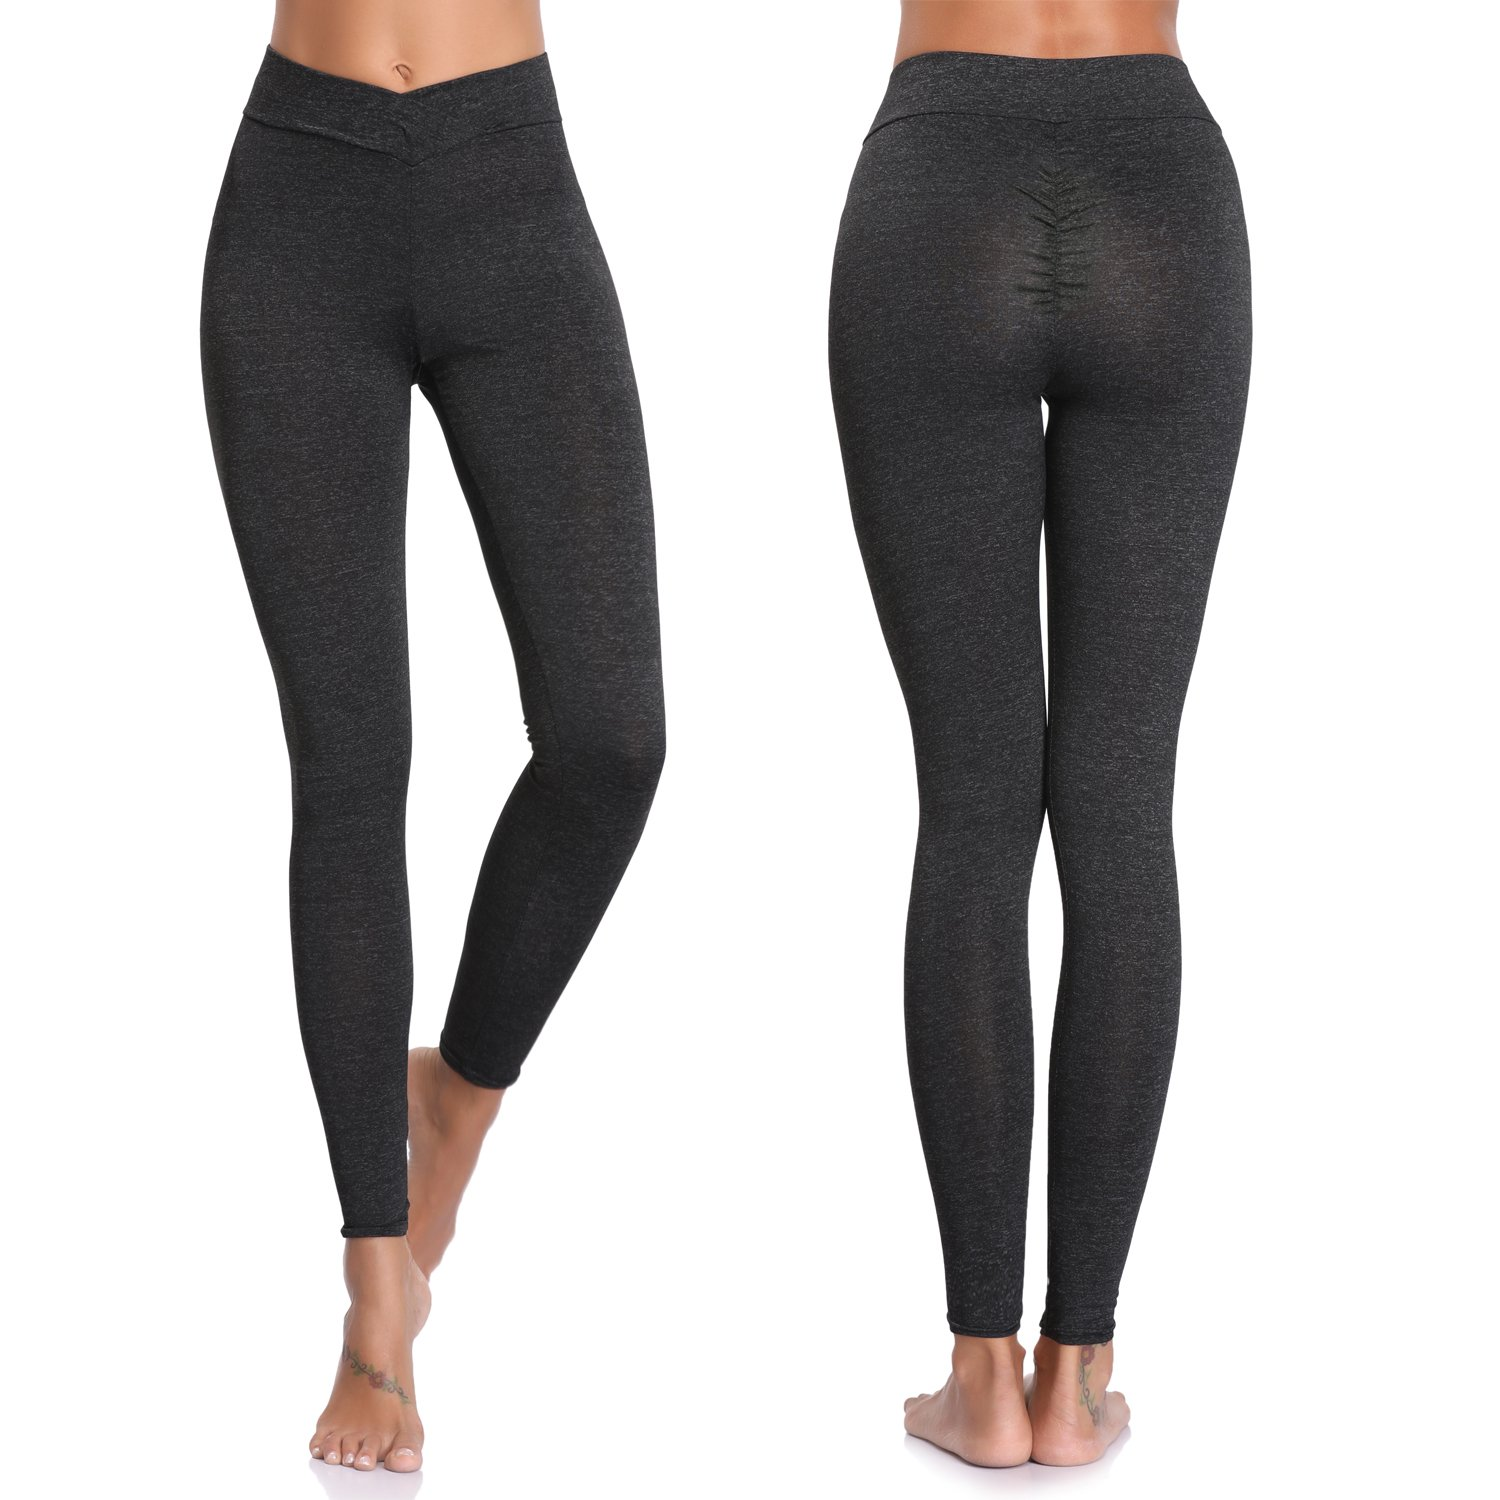 58174c461c3063 Amazon.com: Joyshaper Workout Leggings for Women Scrunch Butt Ruched High  Waist Capri Pants Running Gym: Clothing